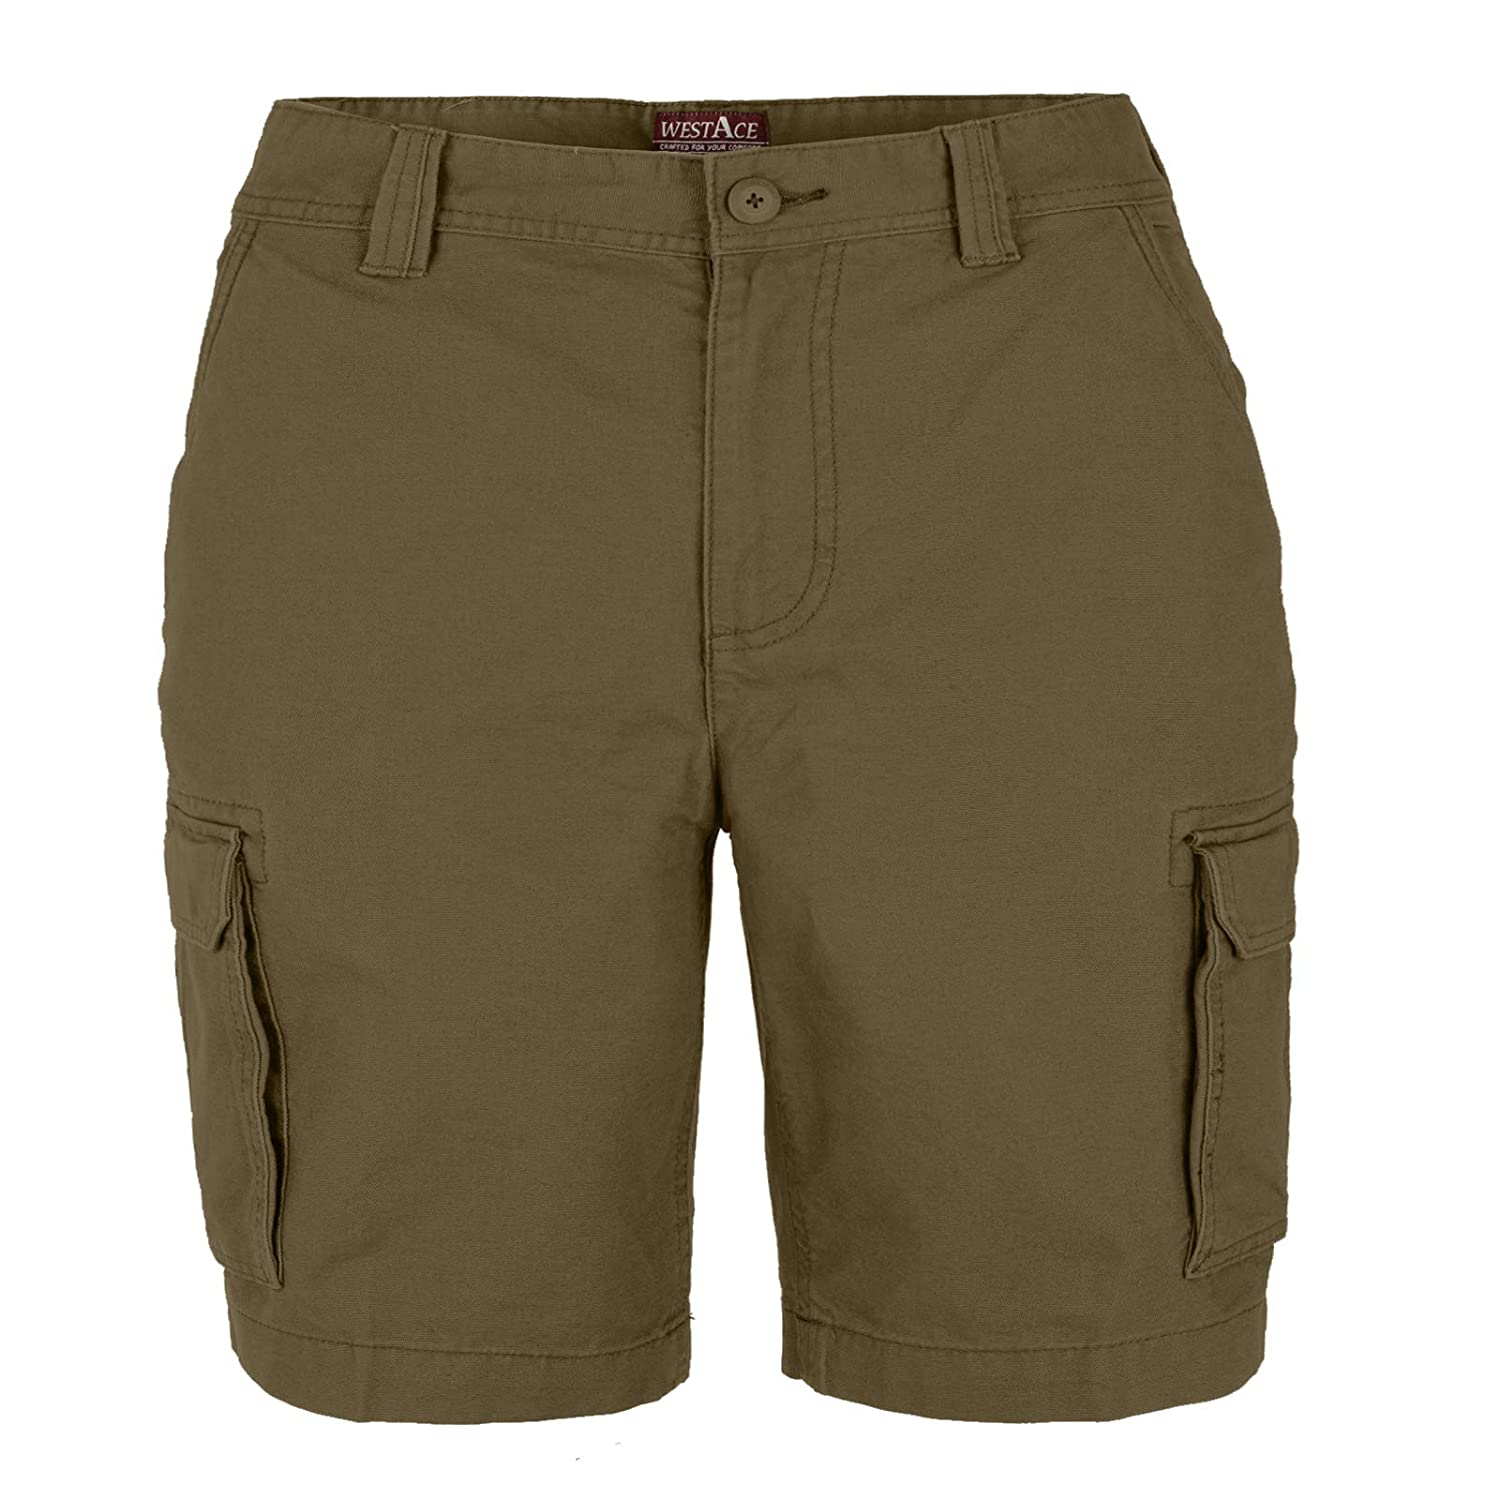 bf61cc3d8b4da Cargo work wear shorts. Cargo Combat Half Pant that s clean-cut and  versatile enough for the weekend